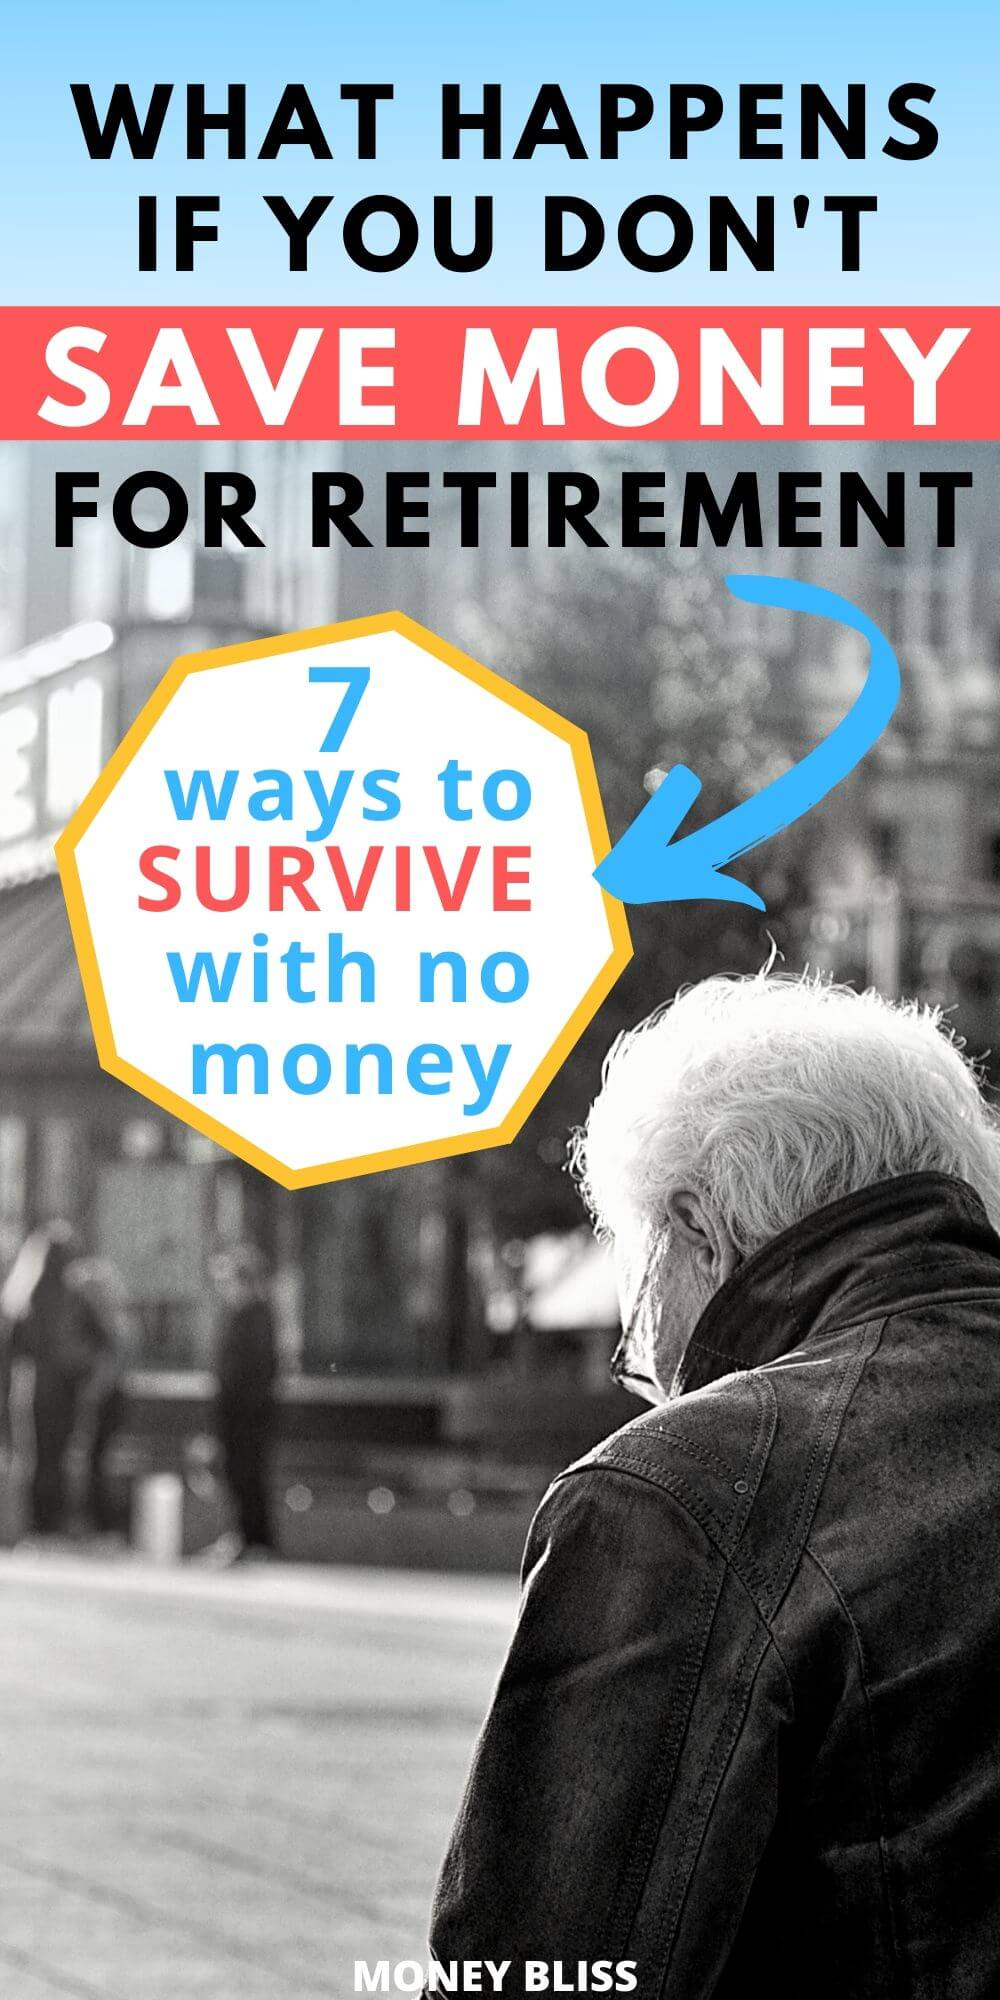 If you are worried about not having enough retirement money, then you need to learn what happens if you don't save for retirement. Even if don't have enough money saved, then learn tips and tricks to survive with no money. Make a plan today to save money before you hit retirement age.